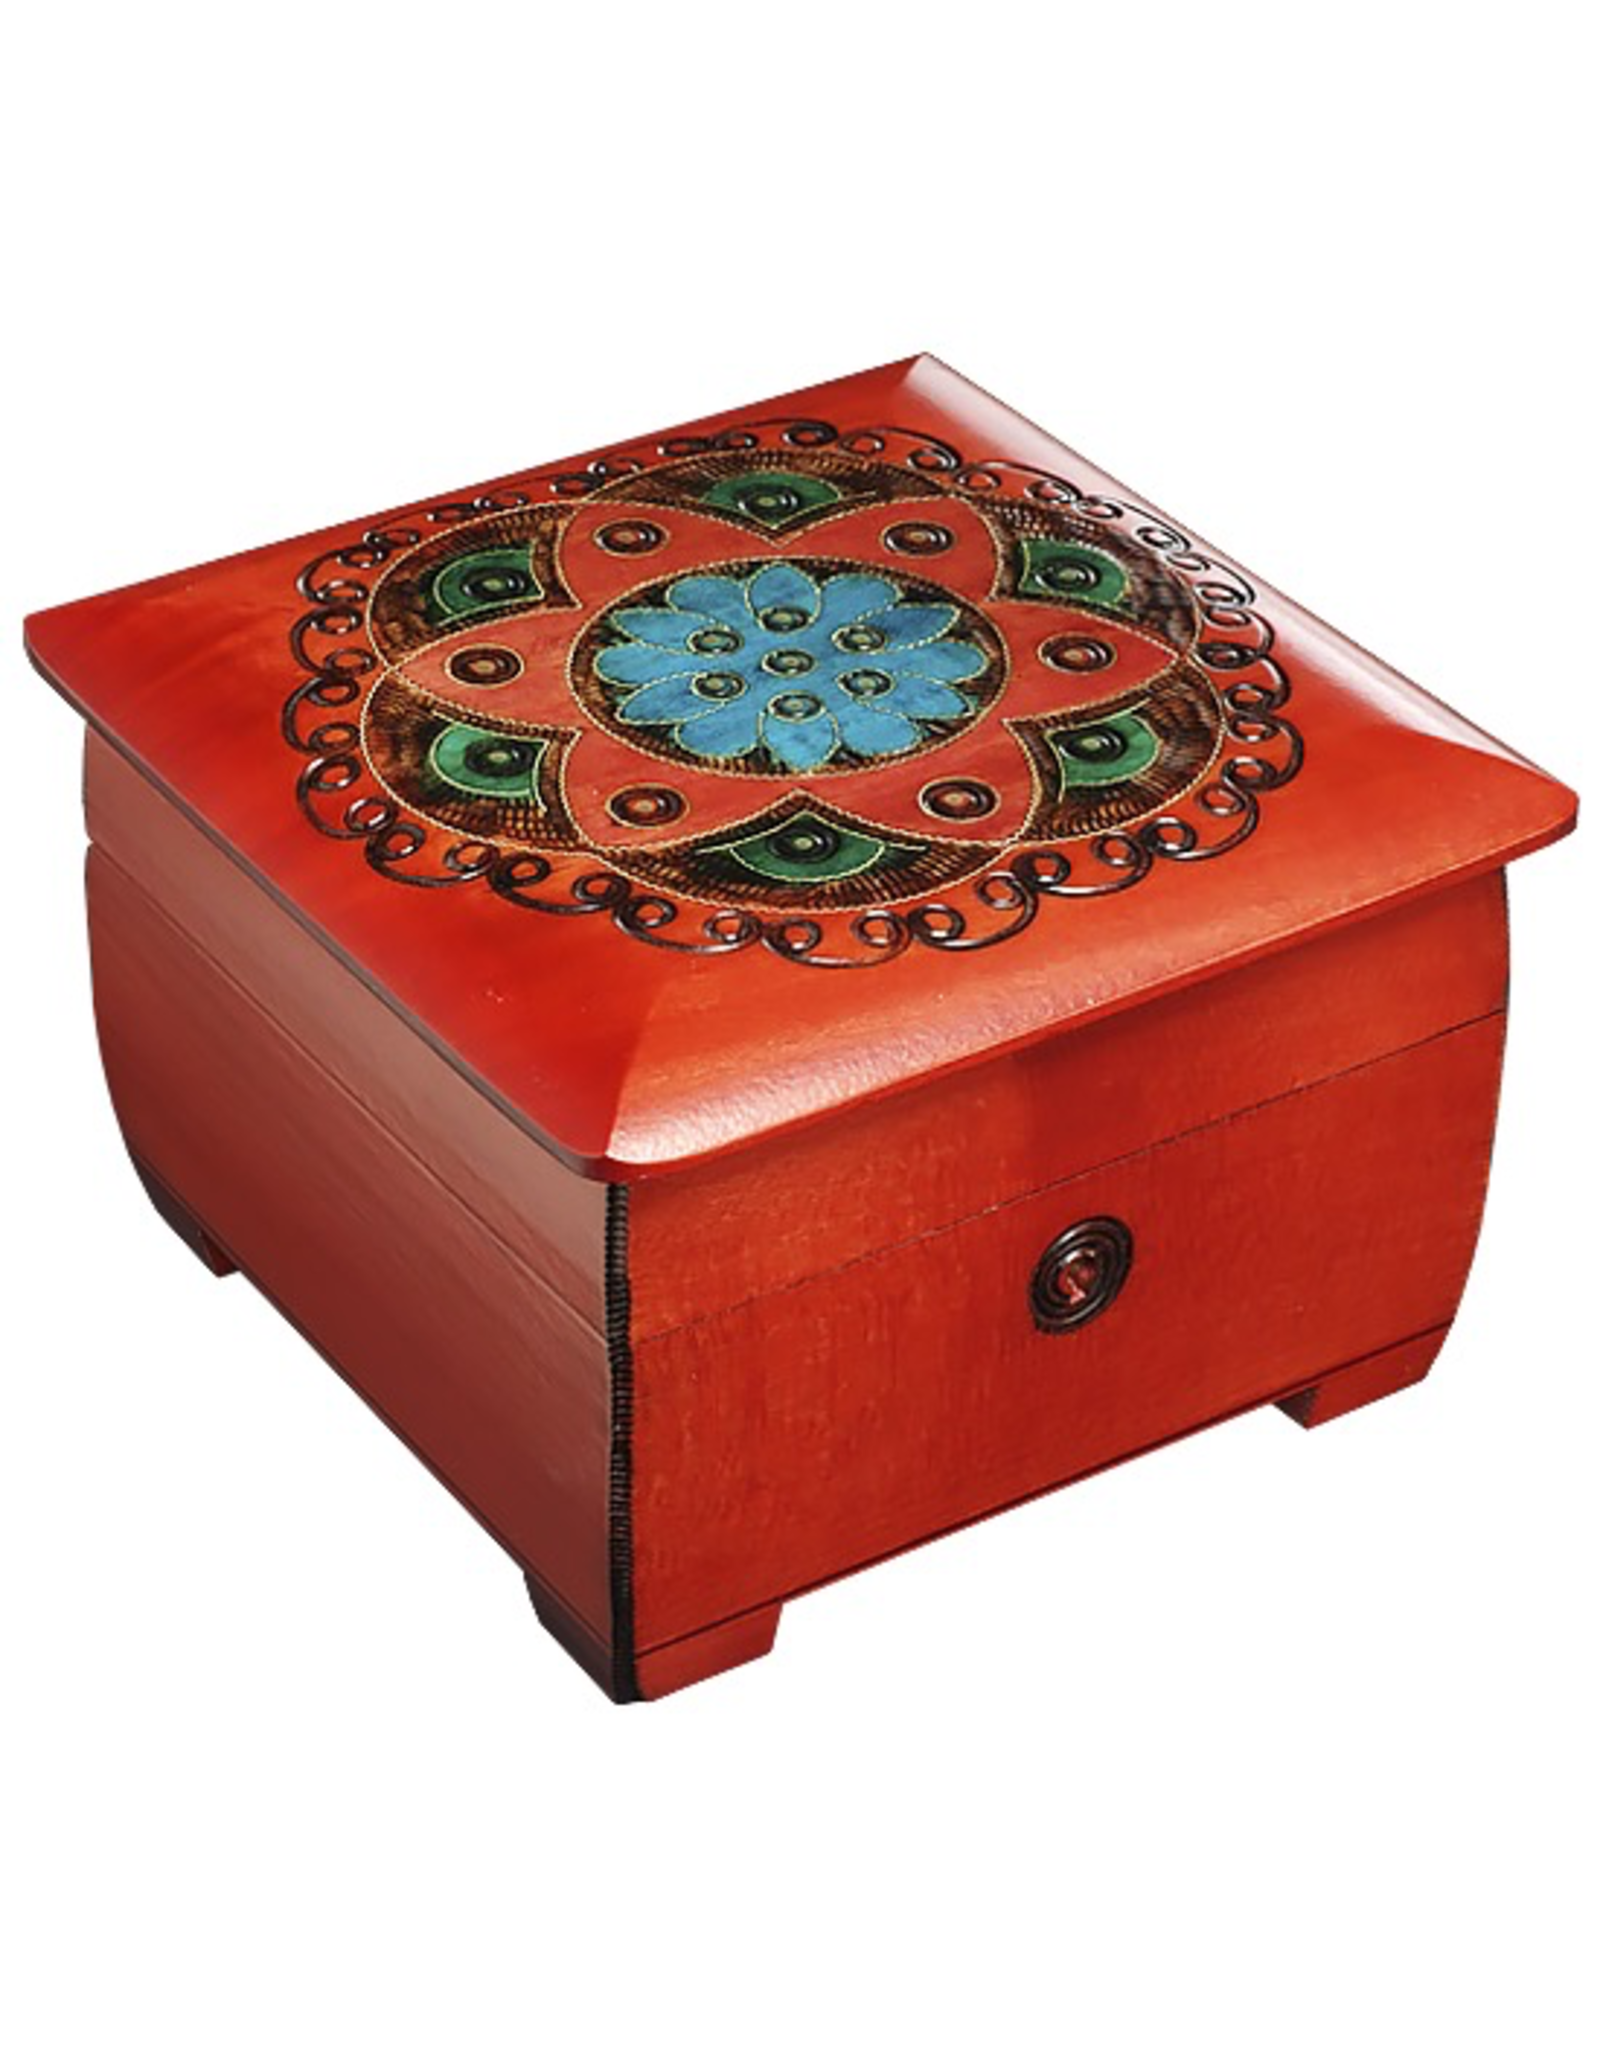 Enchanted Boxes Chakra Keyed Red & Blue Chest